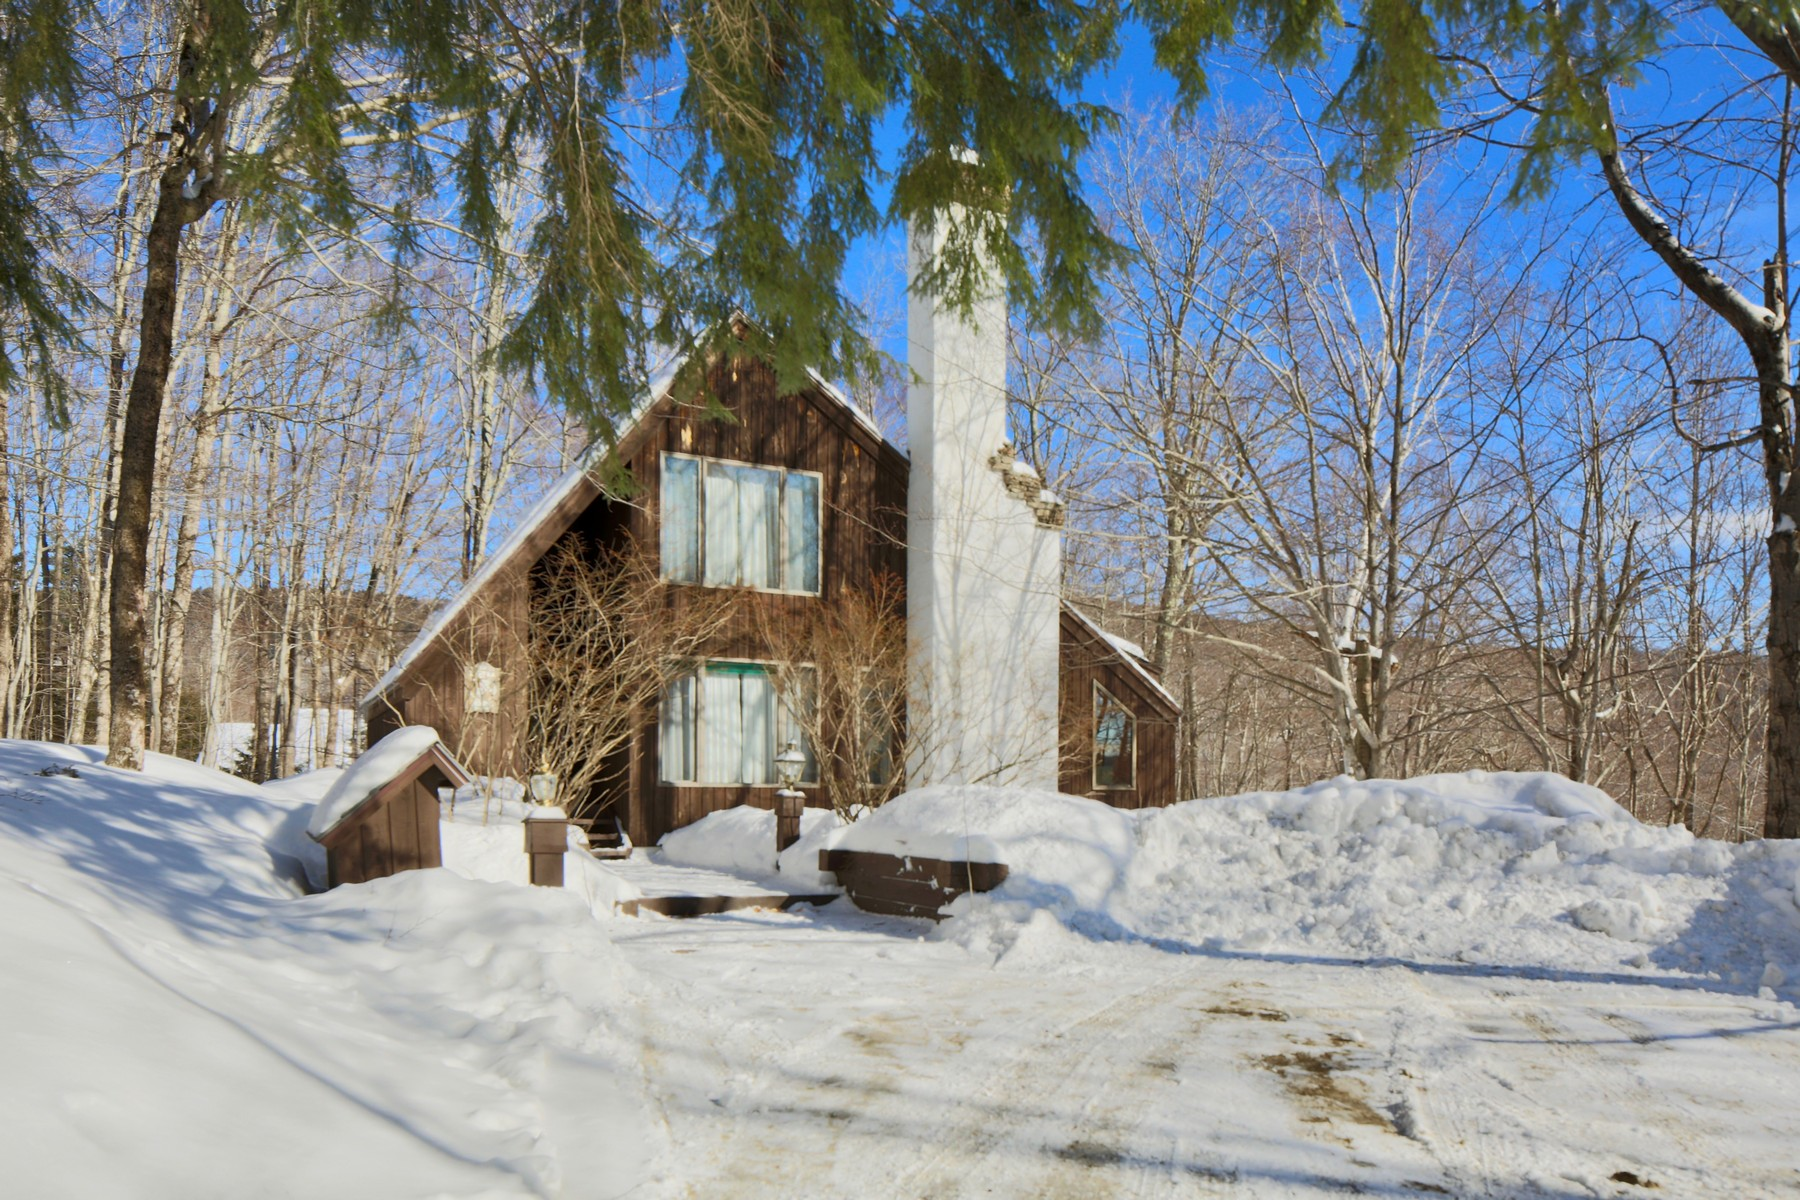 Single Family Home for Sale at Turn-Key - Privately Sited within Hawk Resort 84 Merlin Way Plymouth, Vermont 05056 United States